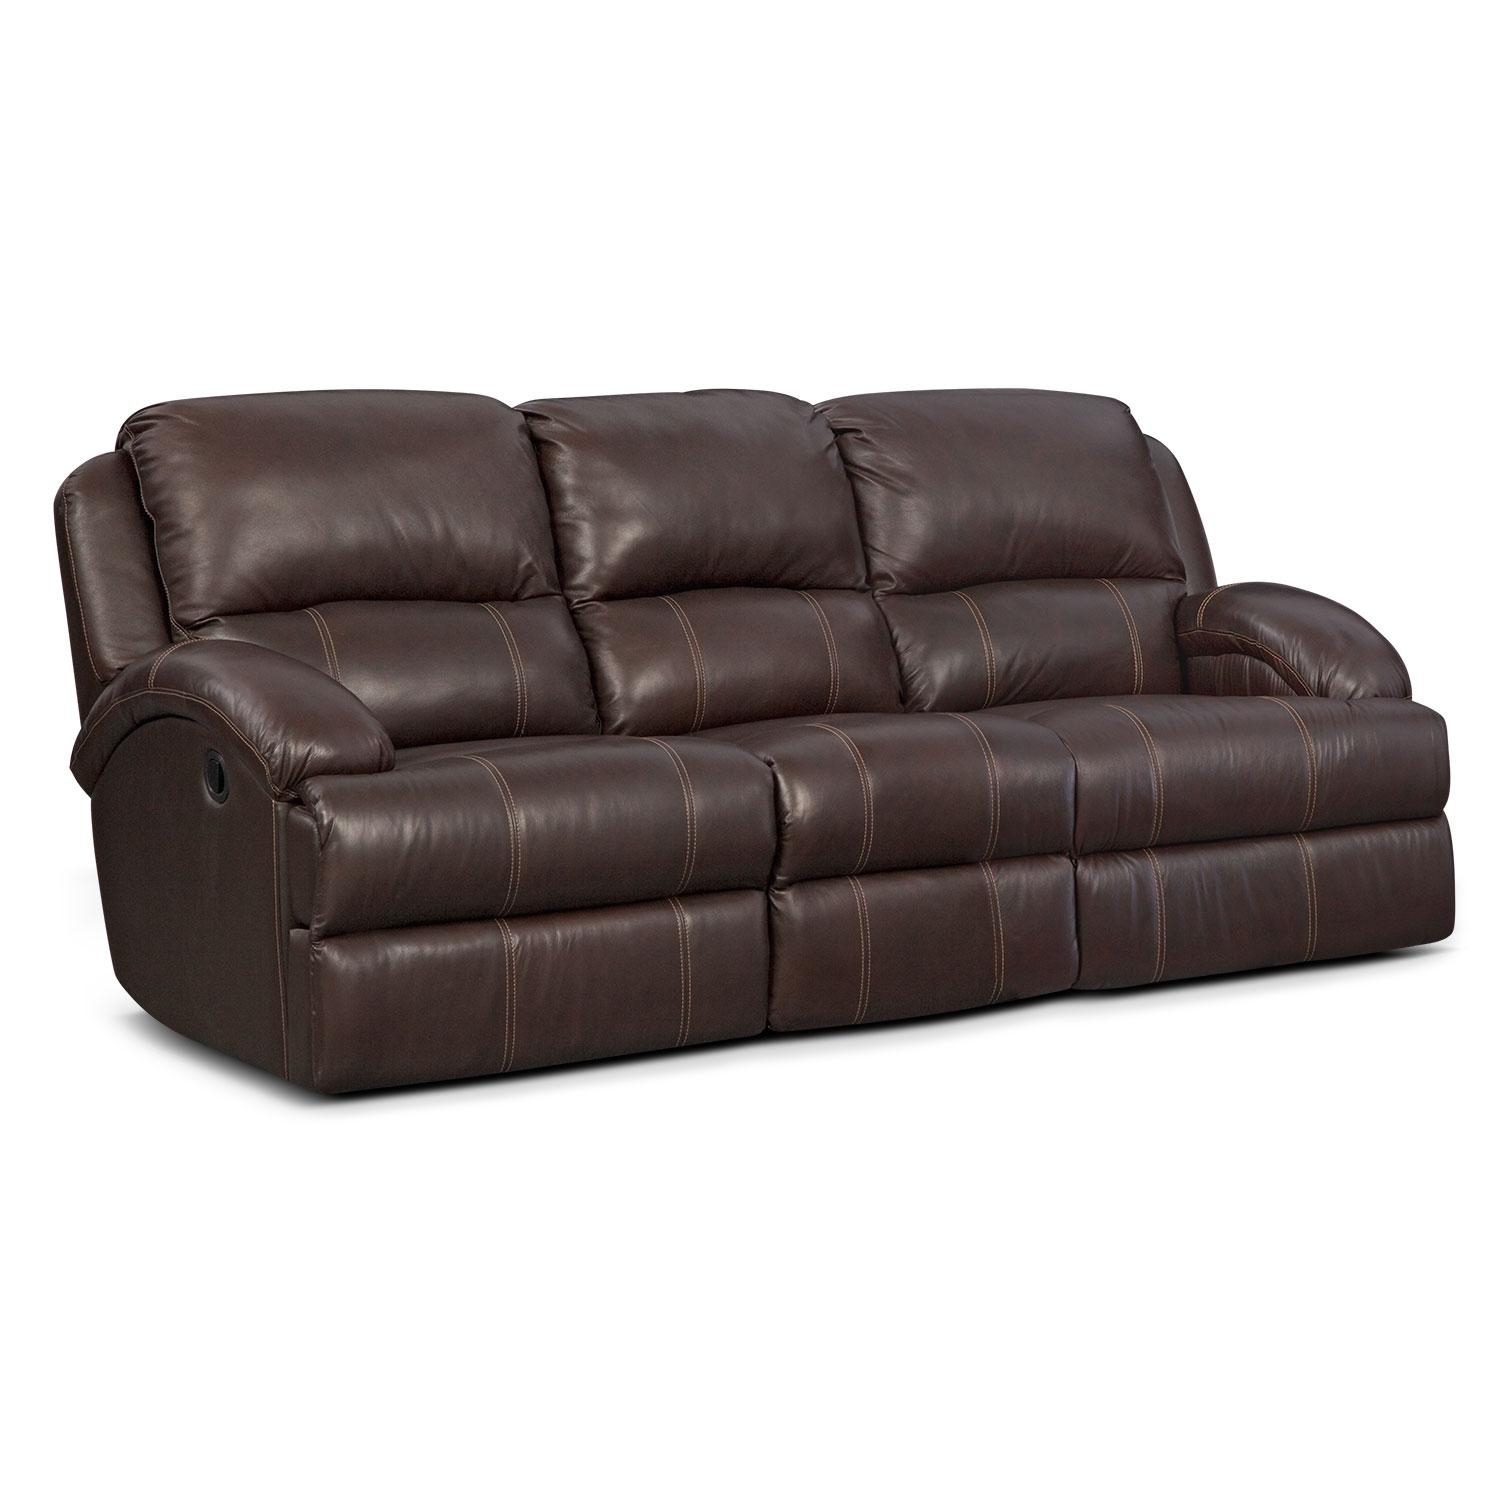 Nolan Dual Reclining Sofa – Chocolate | American Signature Furniture Inside Recliner Sofa Chairs (Image 18 of 20)